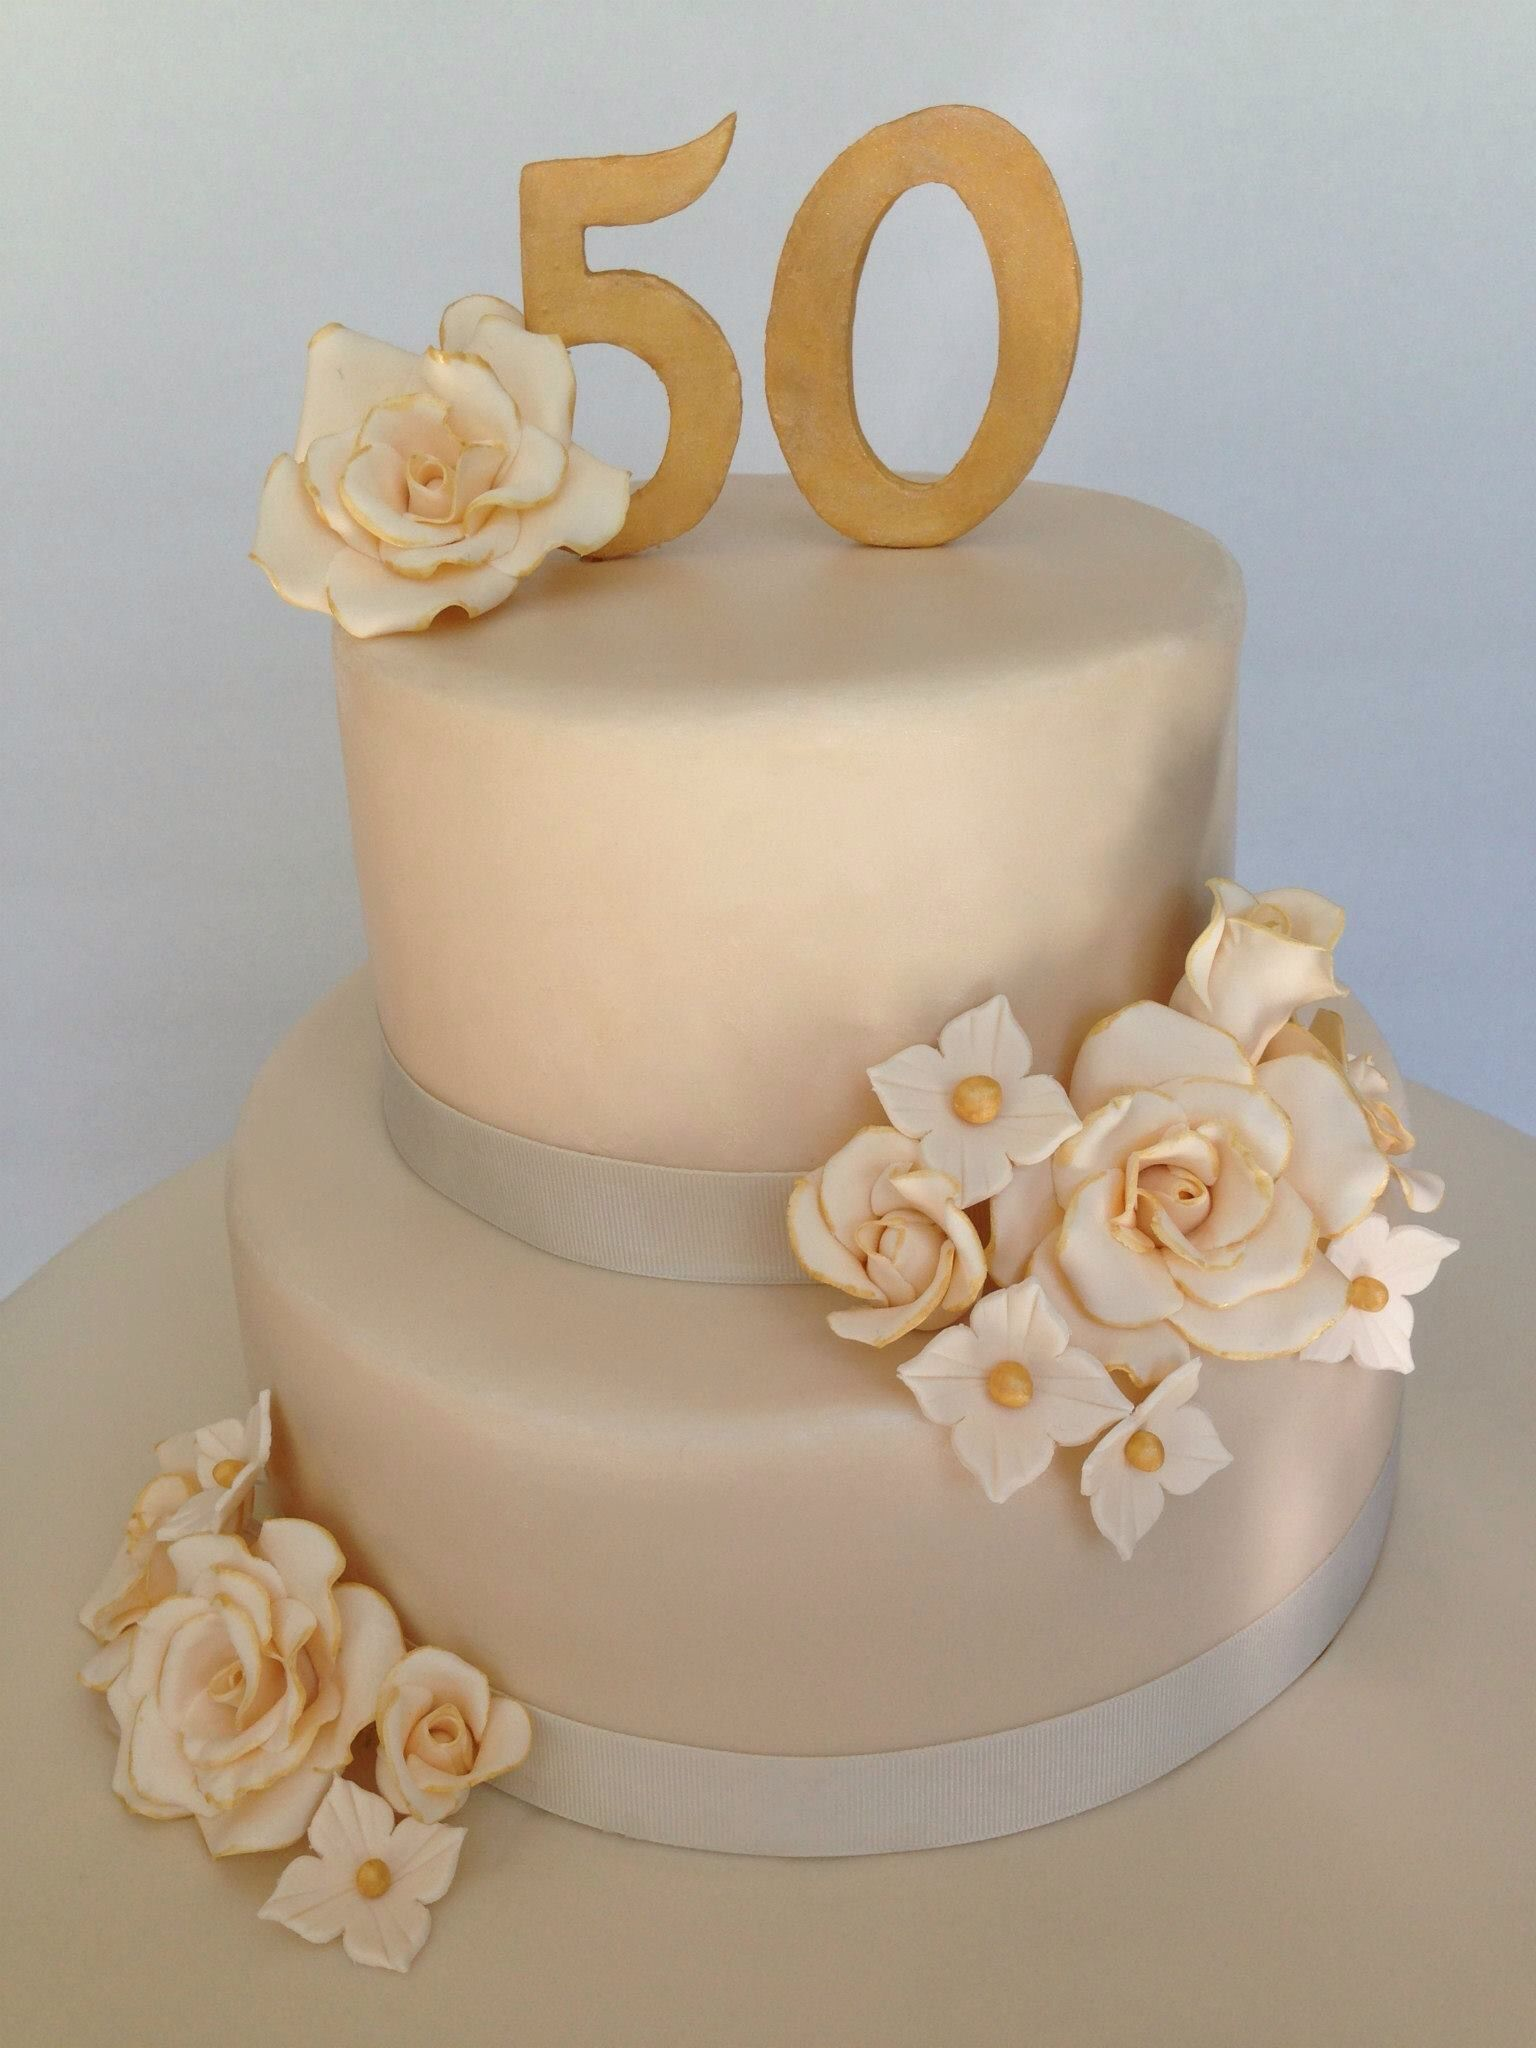 50th Wedding Anniversary Cake Simple Yet Elegant